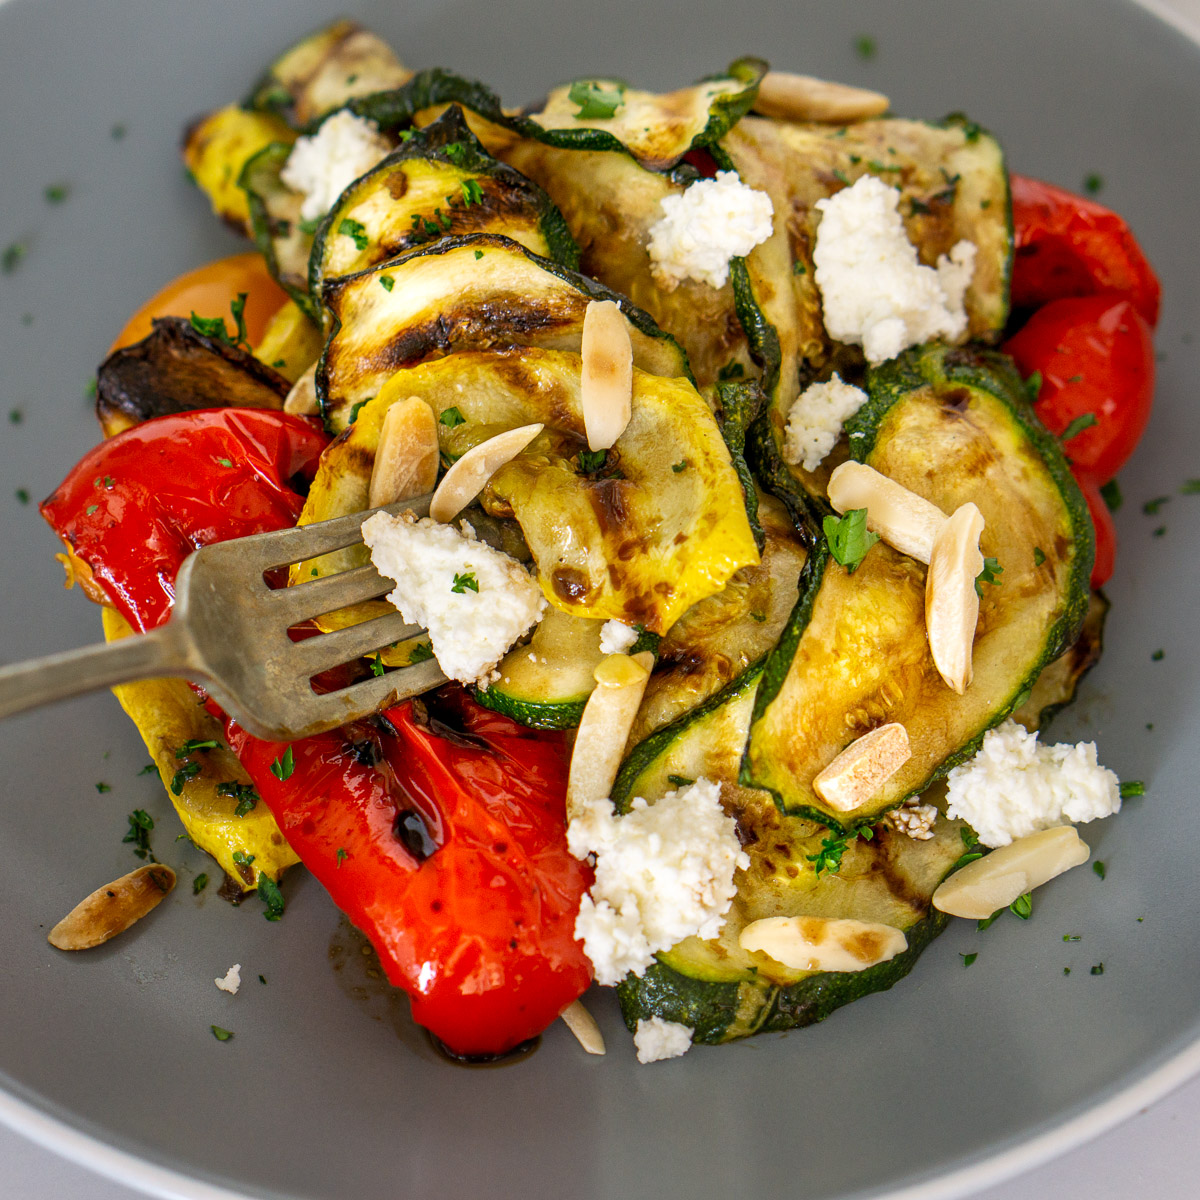 grilled zucchini salad on a plate with balsamic glaze